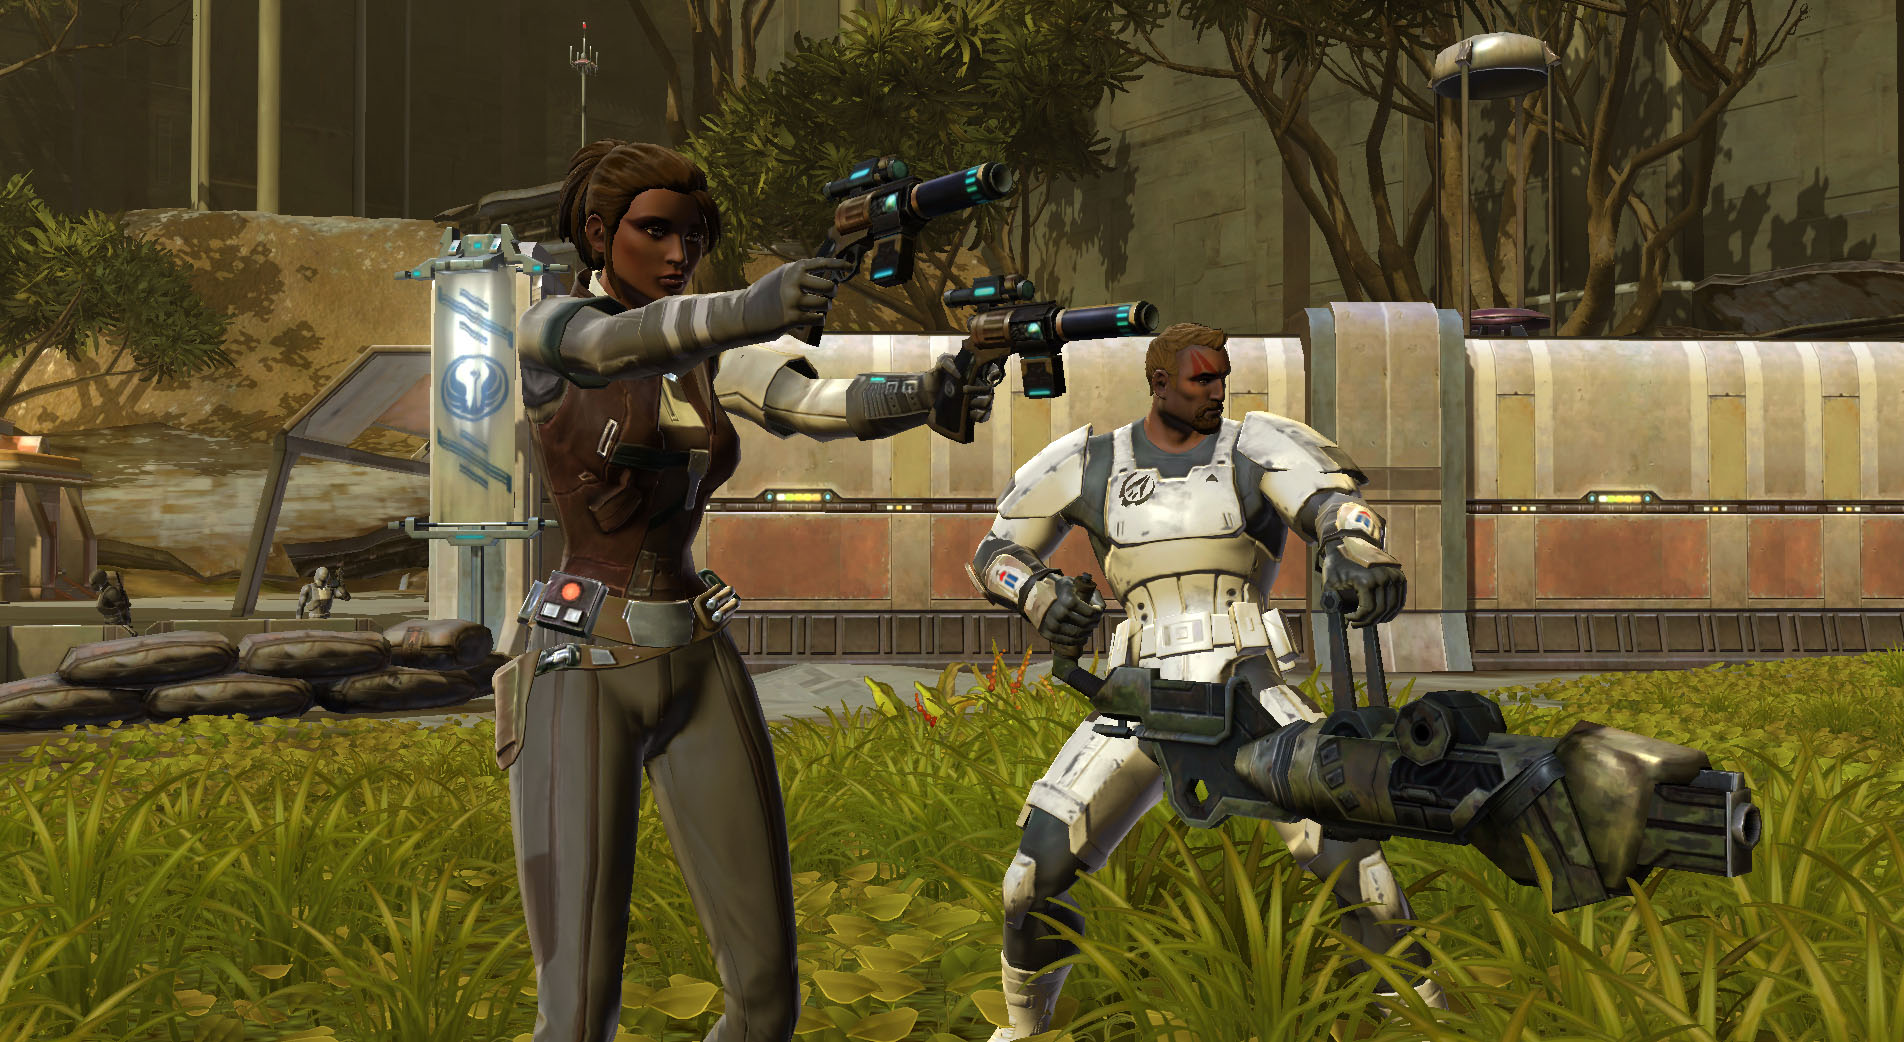 It's a good time to revisit Star Wars: The Old Republic